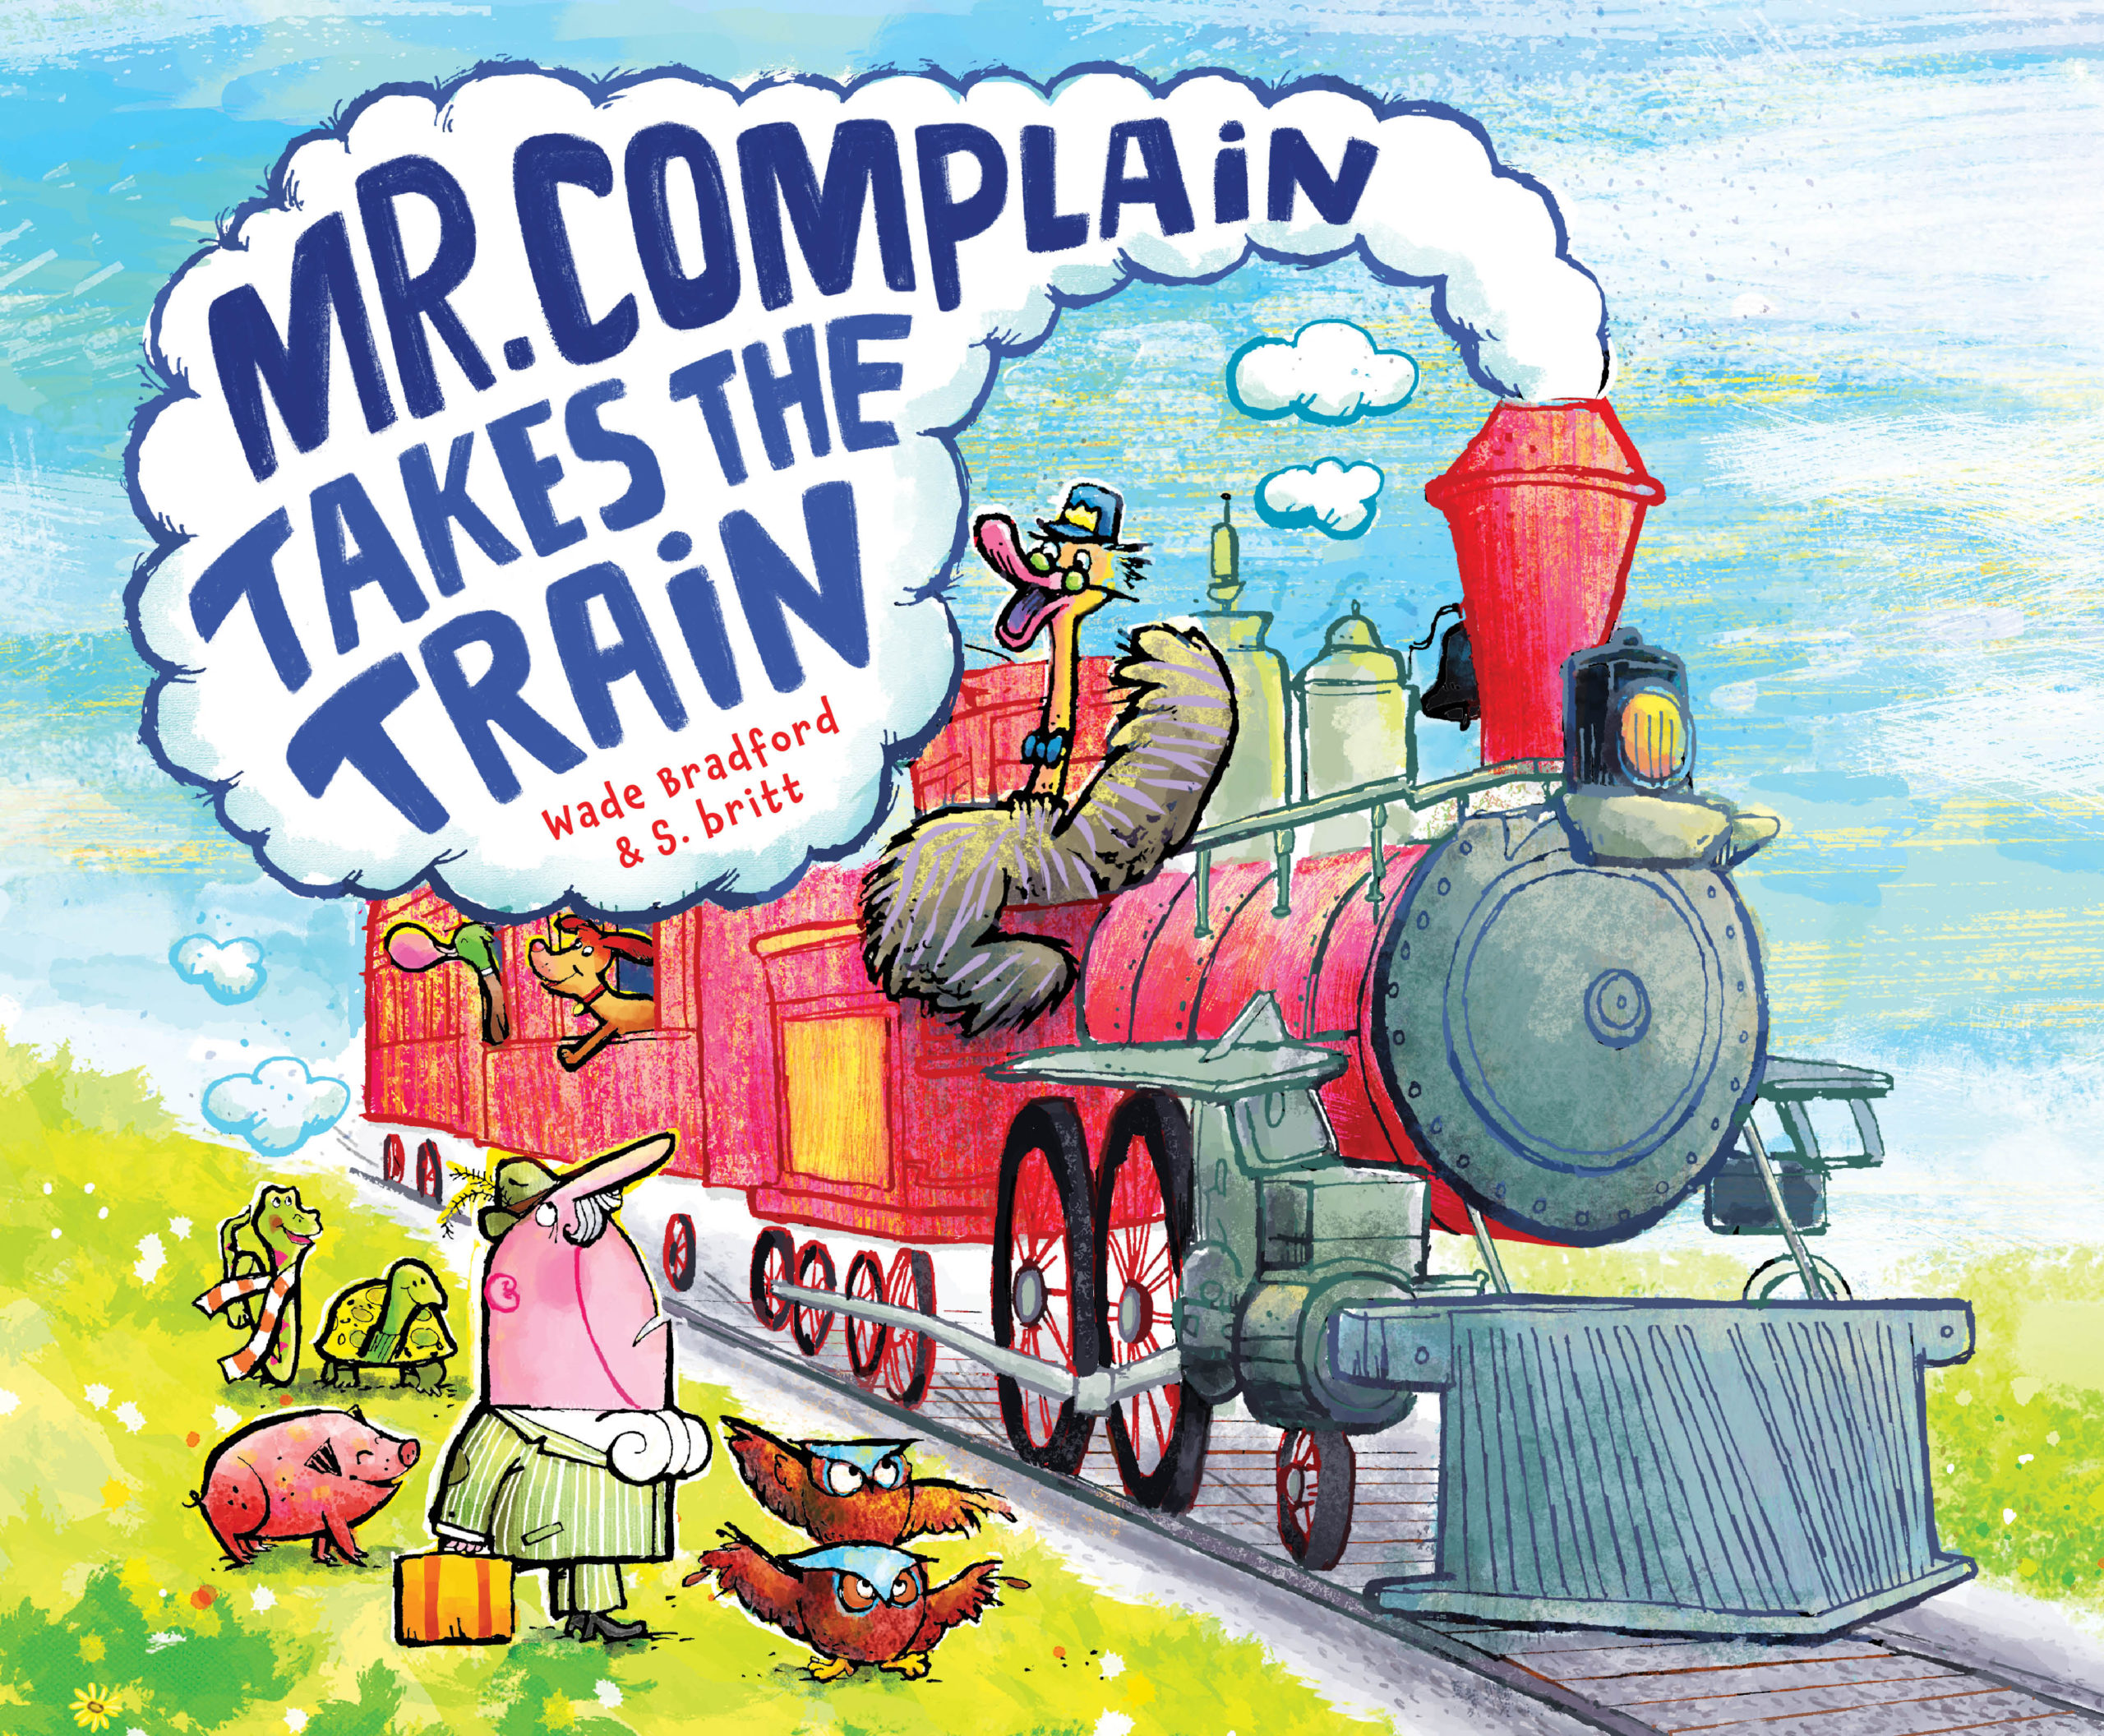 Mr. Complain Takes the Train